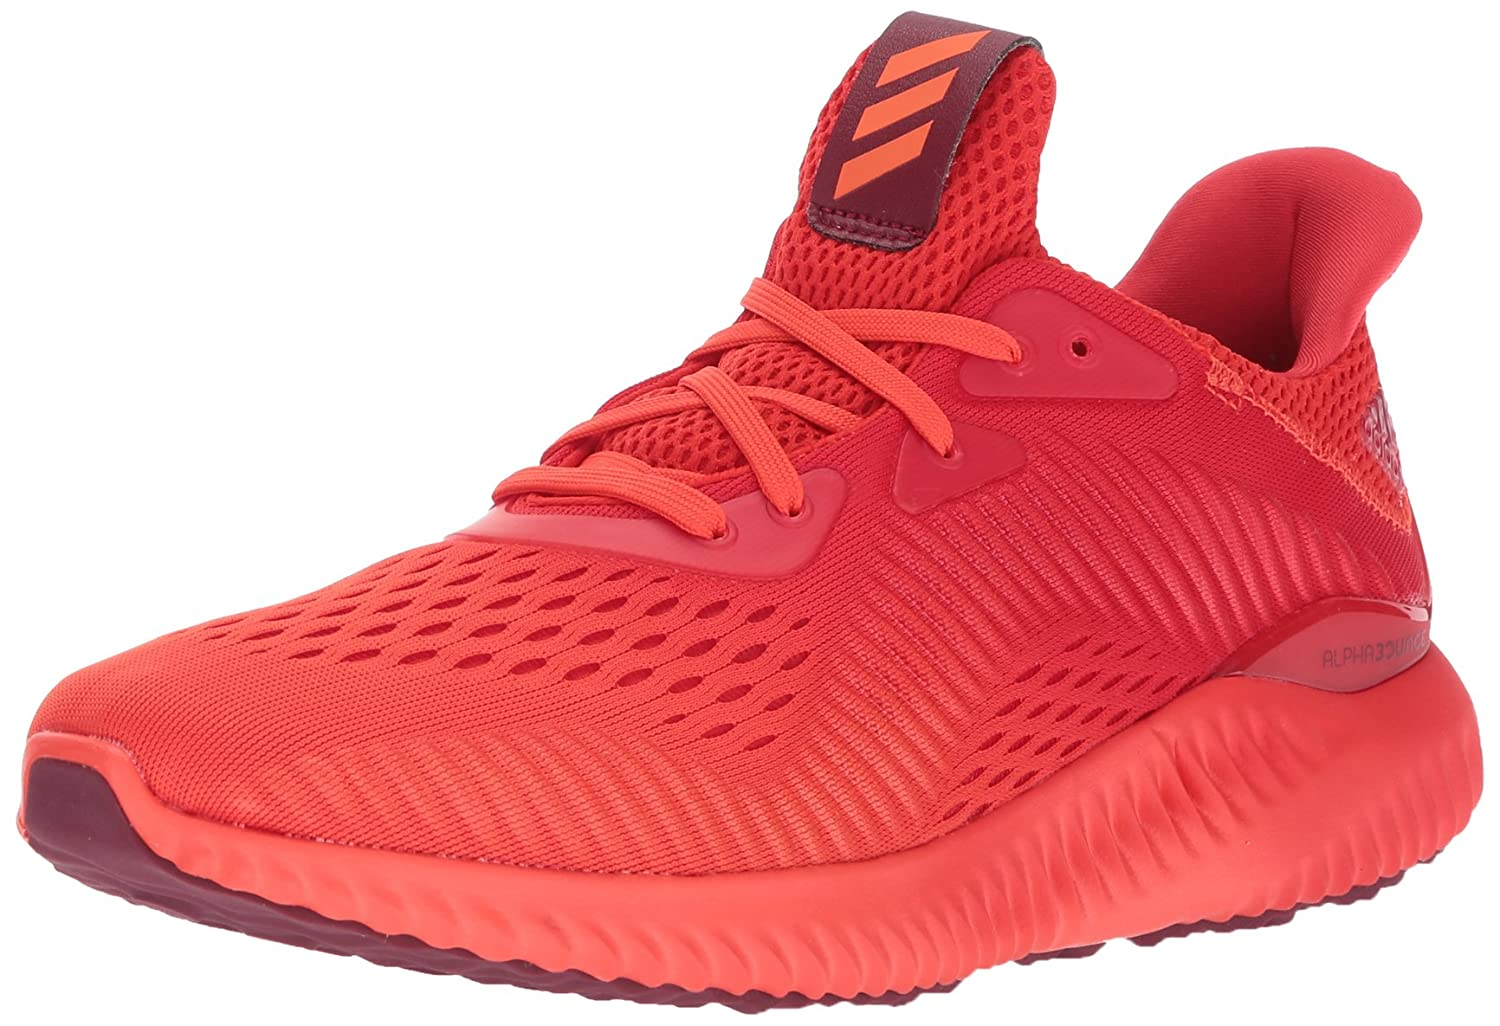 da7af6b66 Adidas Mens Alphabounce Em M Running Shoes Blaze Orange Core Red Collegiate  Burgundy low